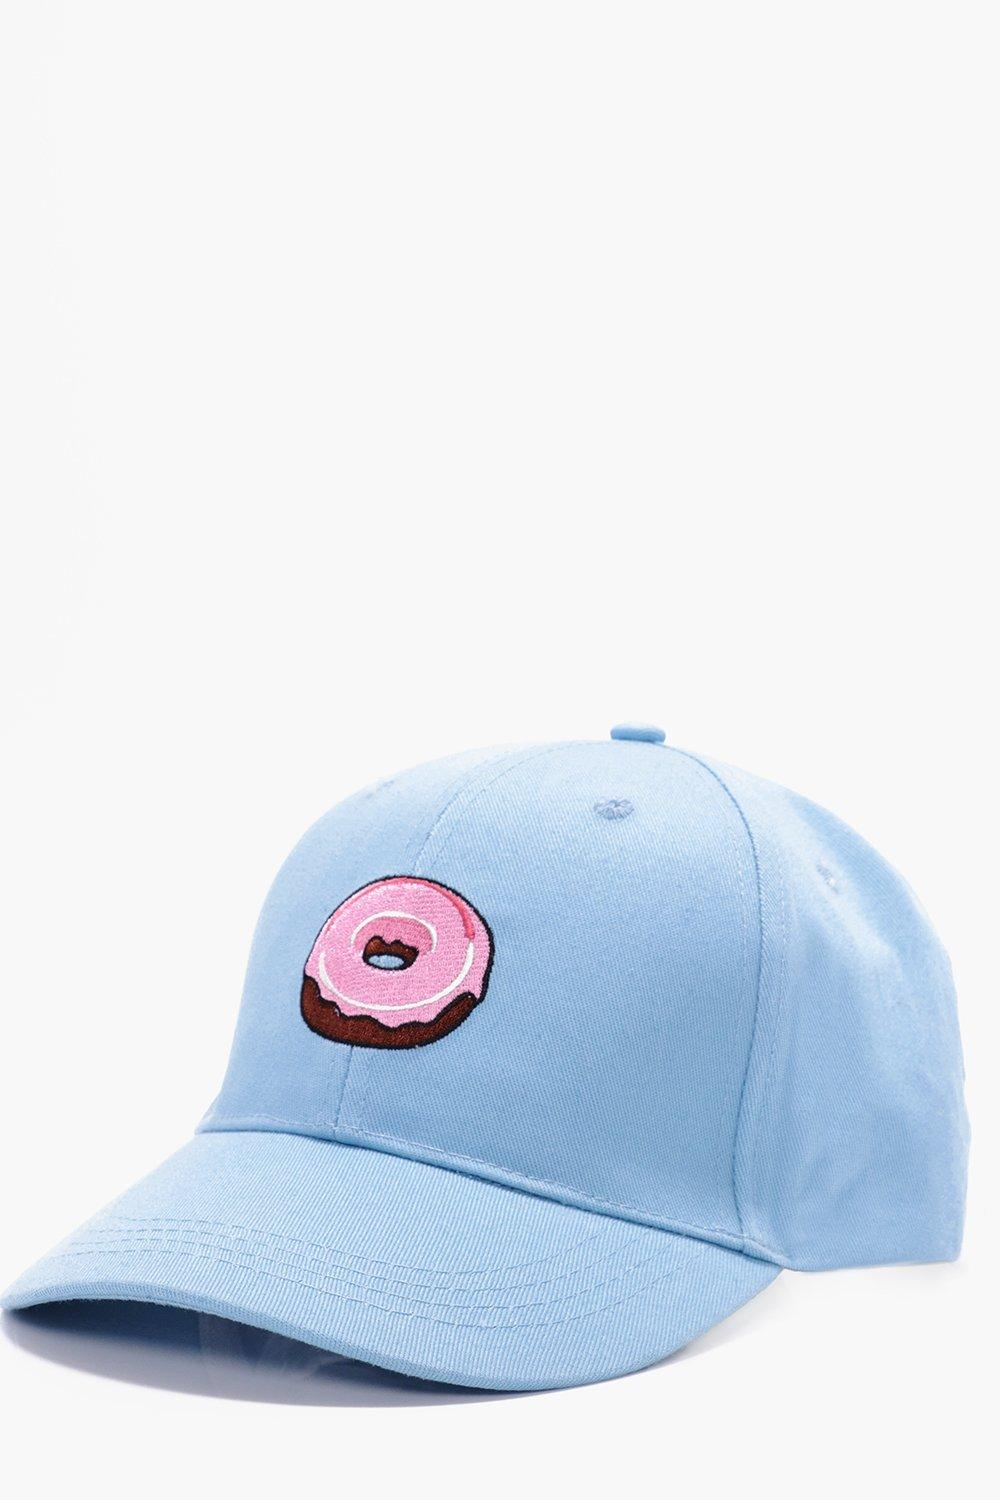 Embroidered Snapback Cap - blue - Donut Embroidere